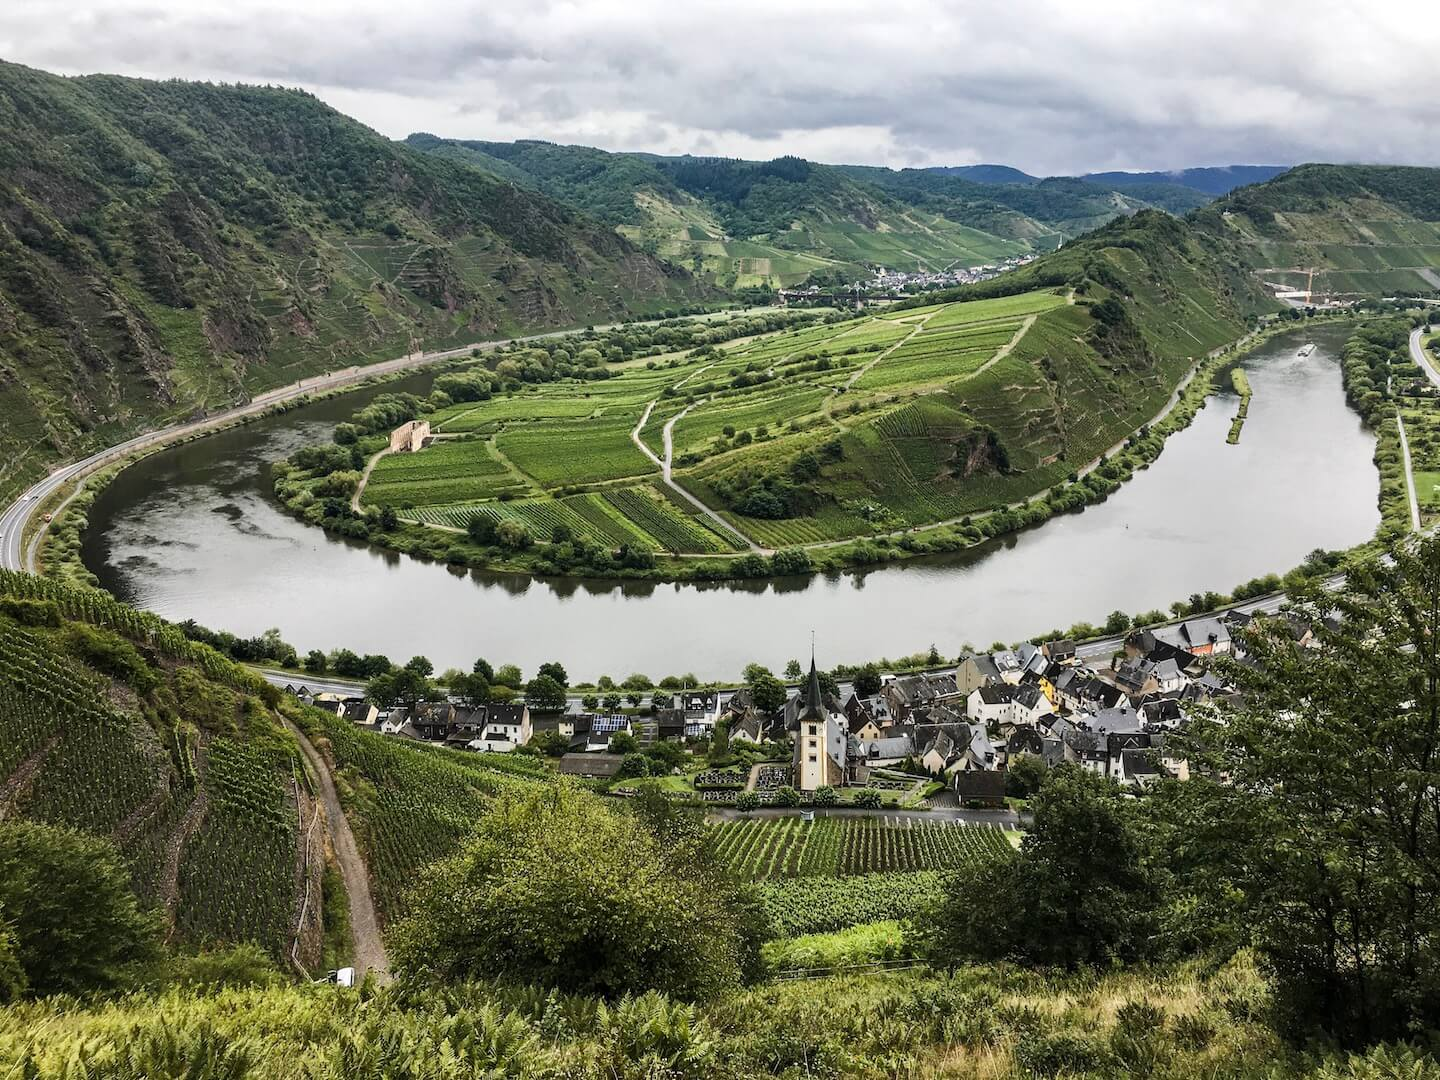 Moselle Valley, Germany Travel Guide - best things to see and do in Germany